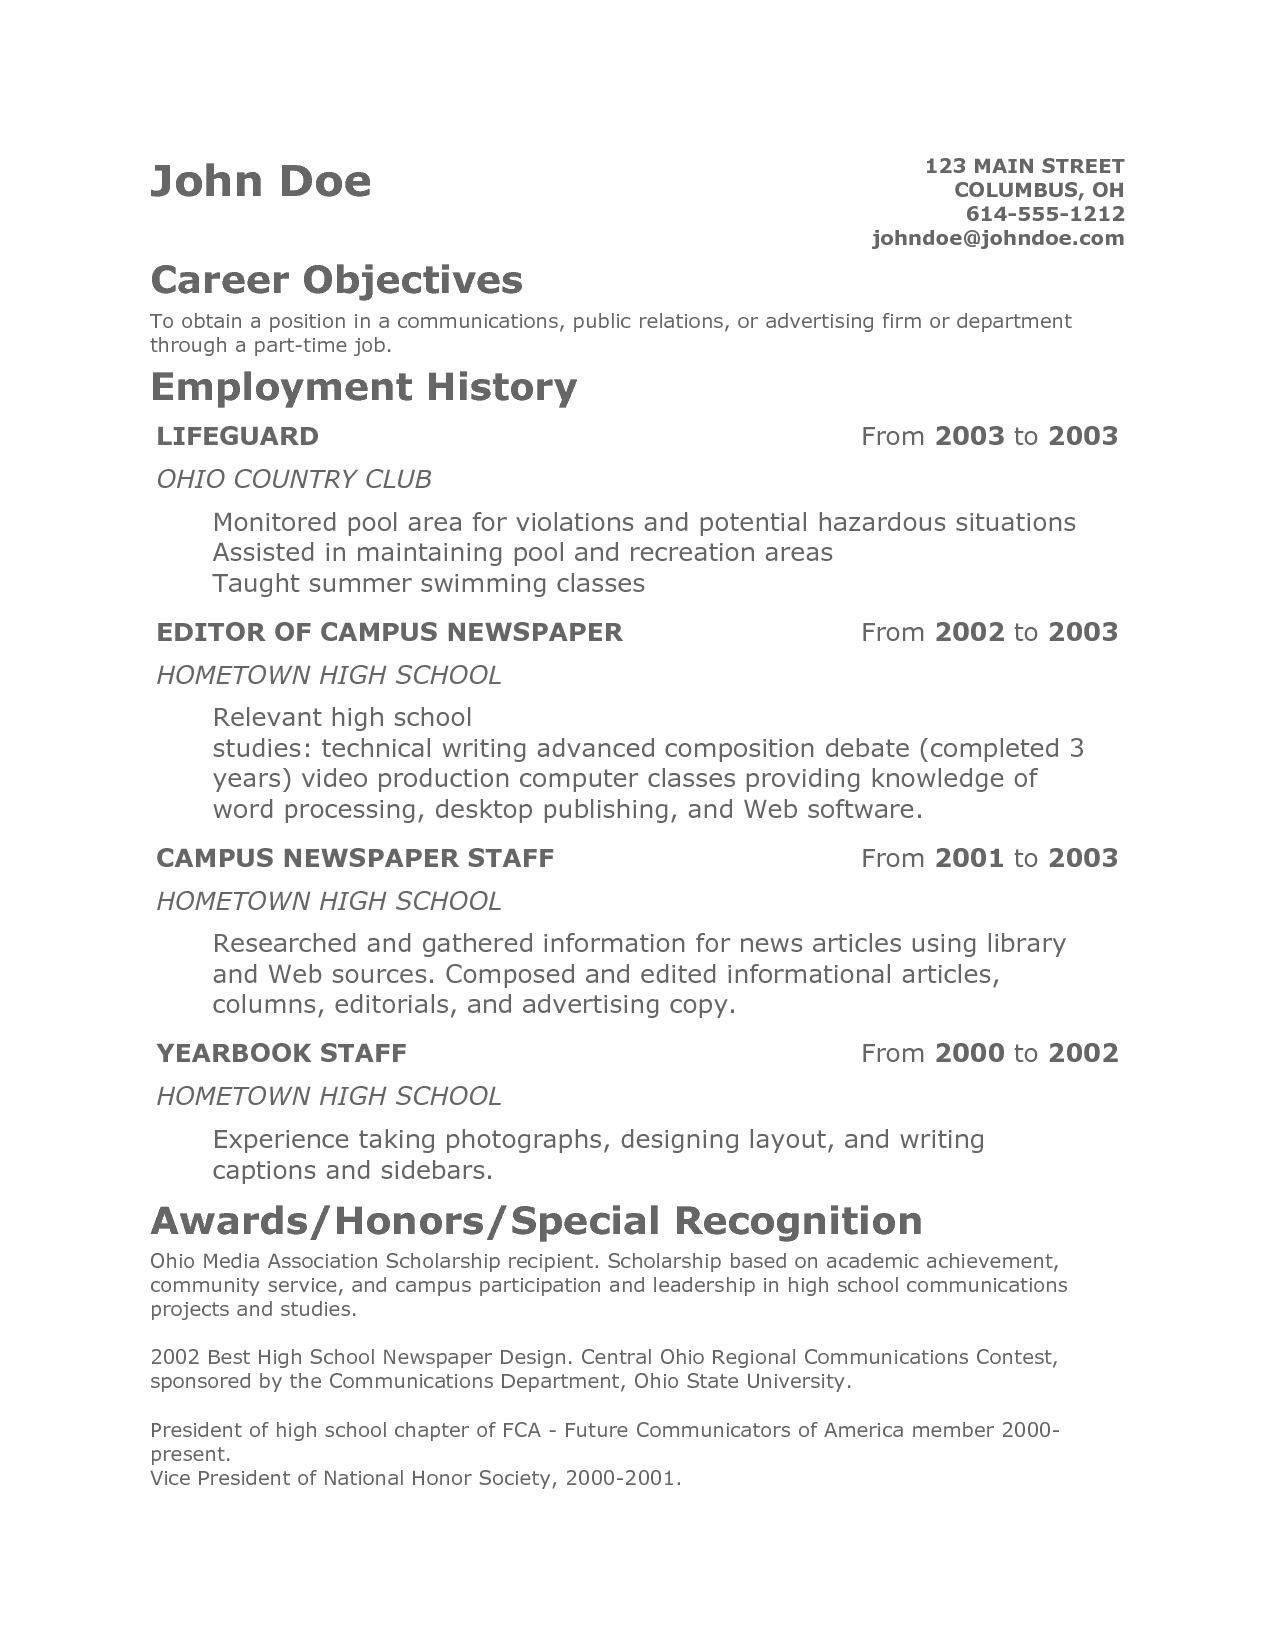 Resume Objective Examples  Teenage Resume Objective Duynvaerdernl